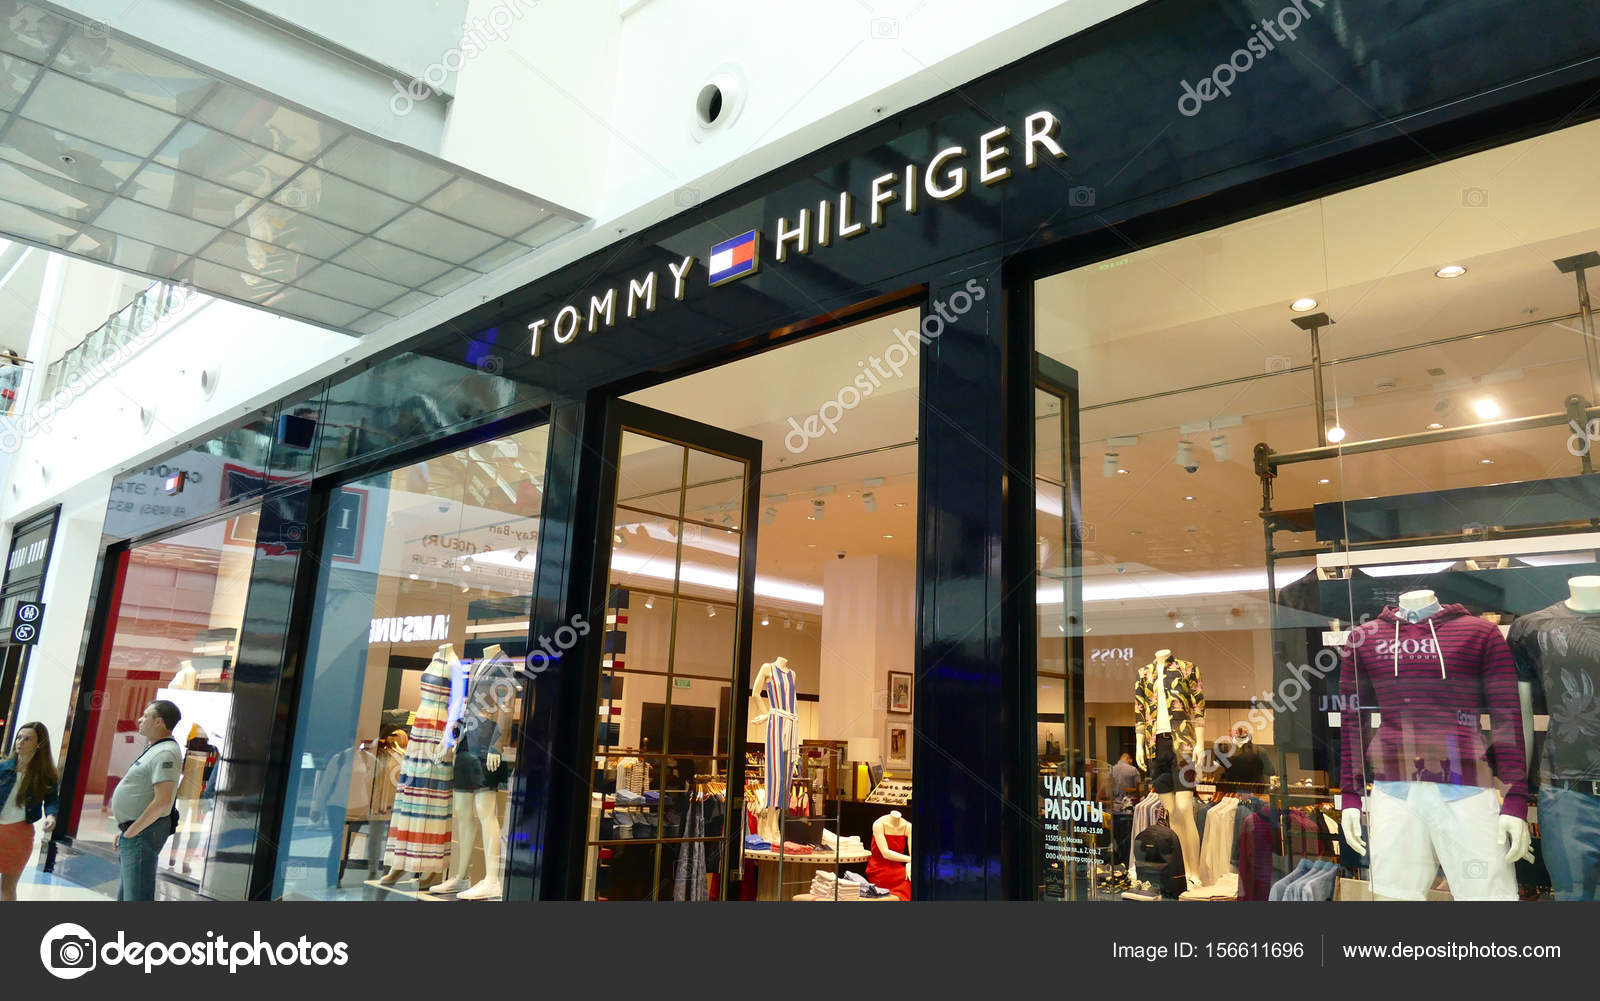 777d24c7 Shop (store - retail) - Tommy Hilfiger in Metropolis mall — Stock Photo